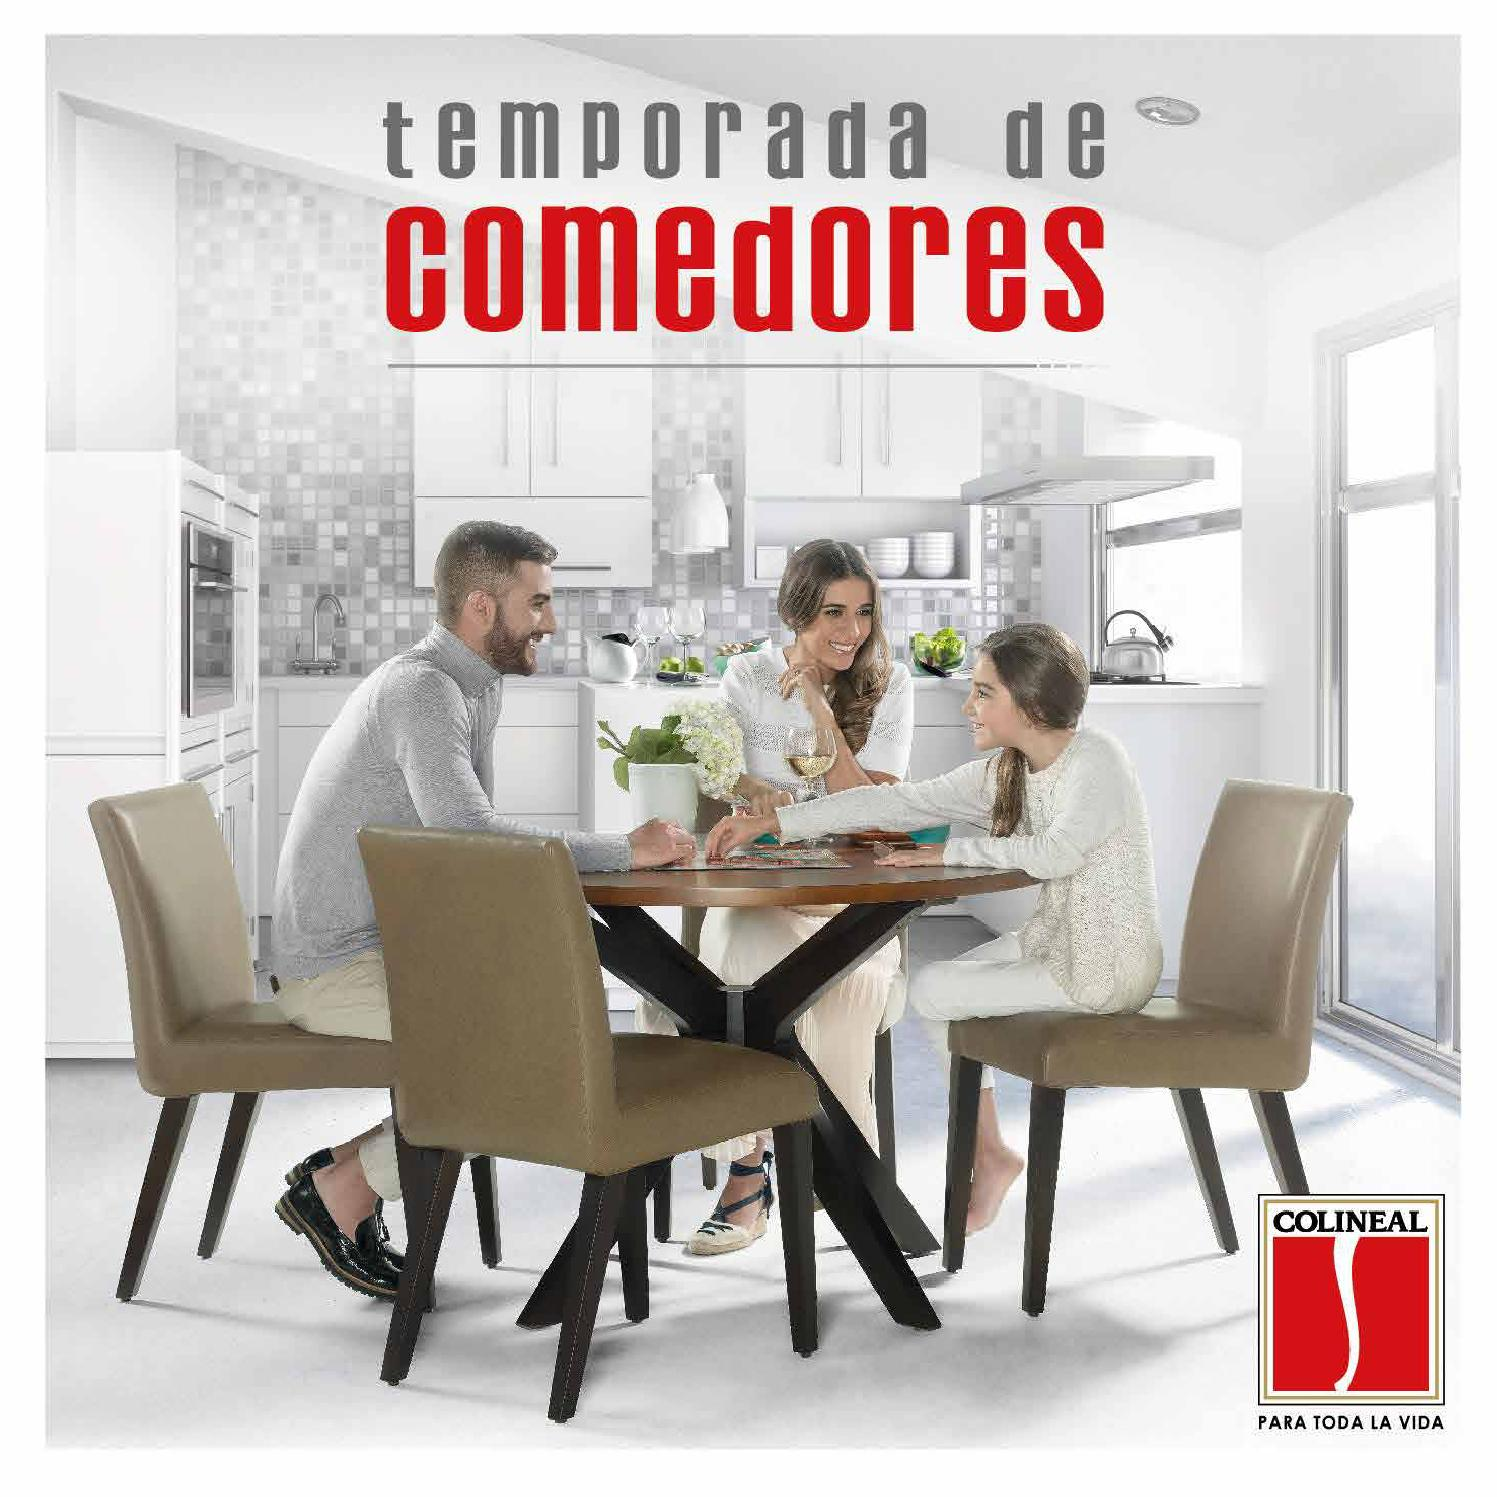 Cat logo de comedores per by colineal issuu for Muebles peru catalogo